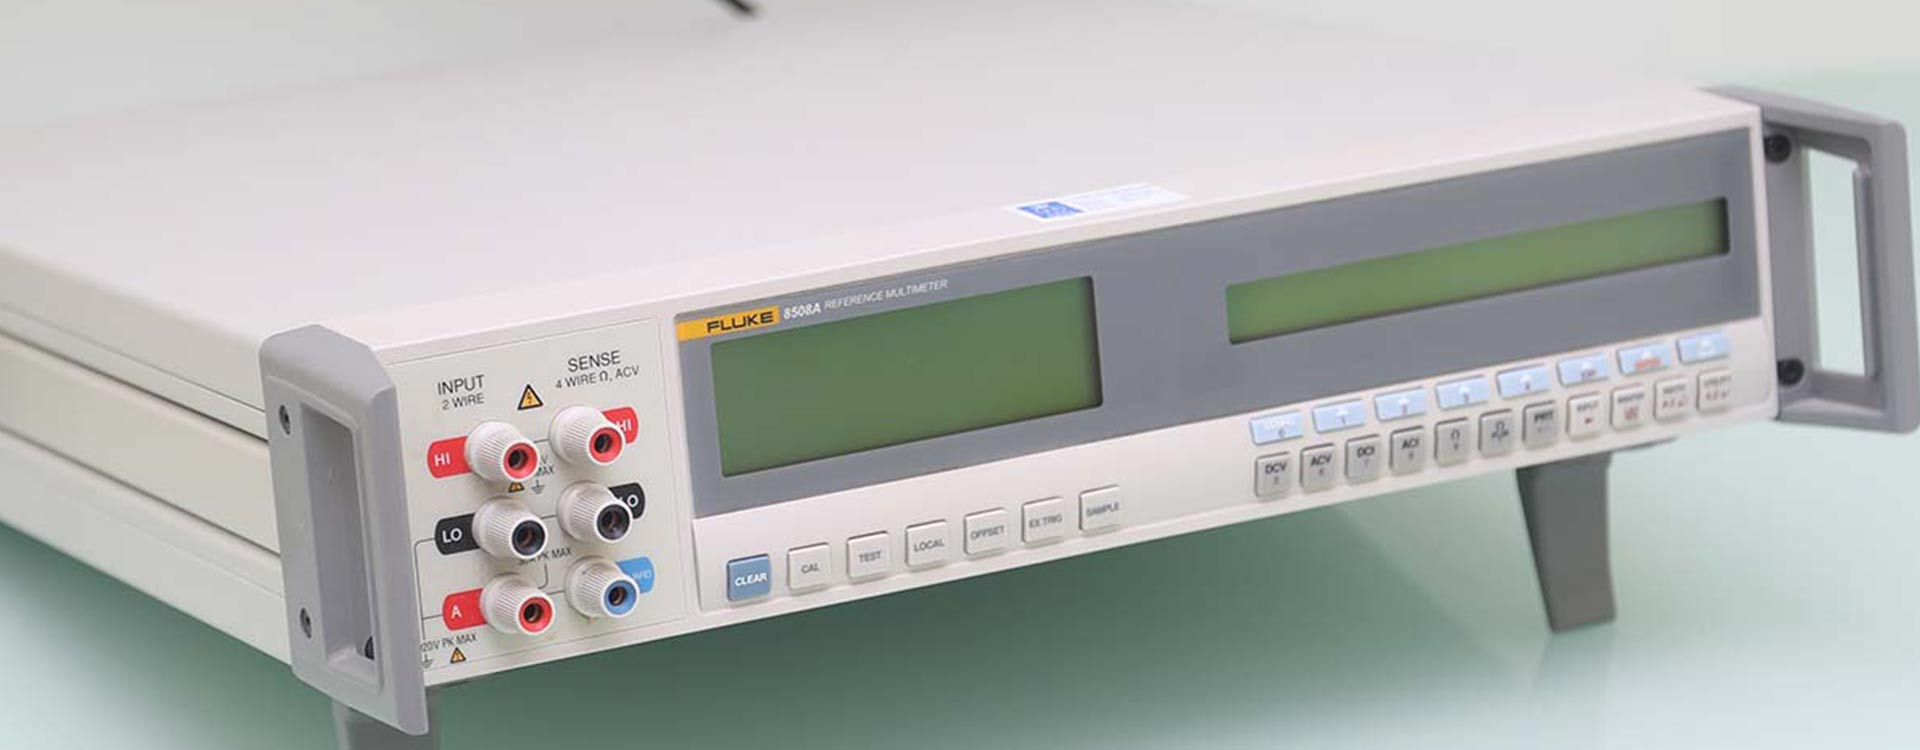 Calibration Serives for Electrical Test Equipment Saudi Arabia